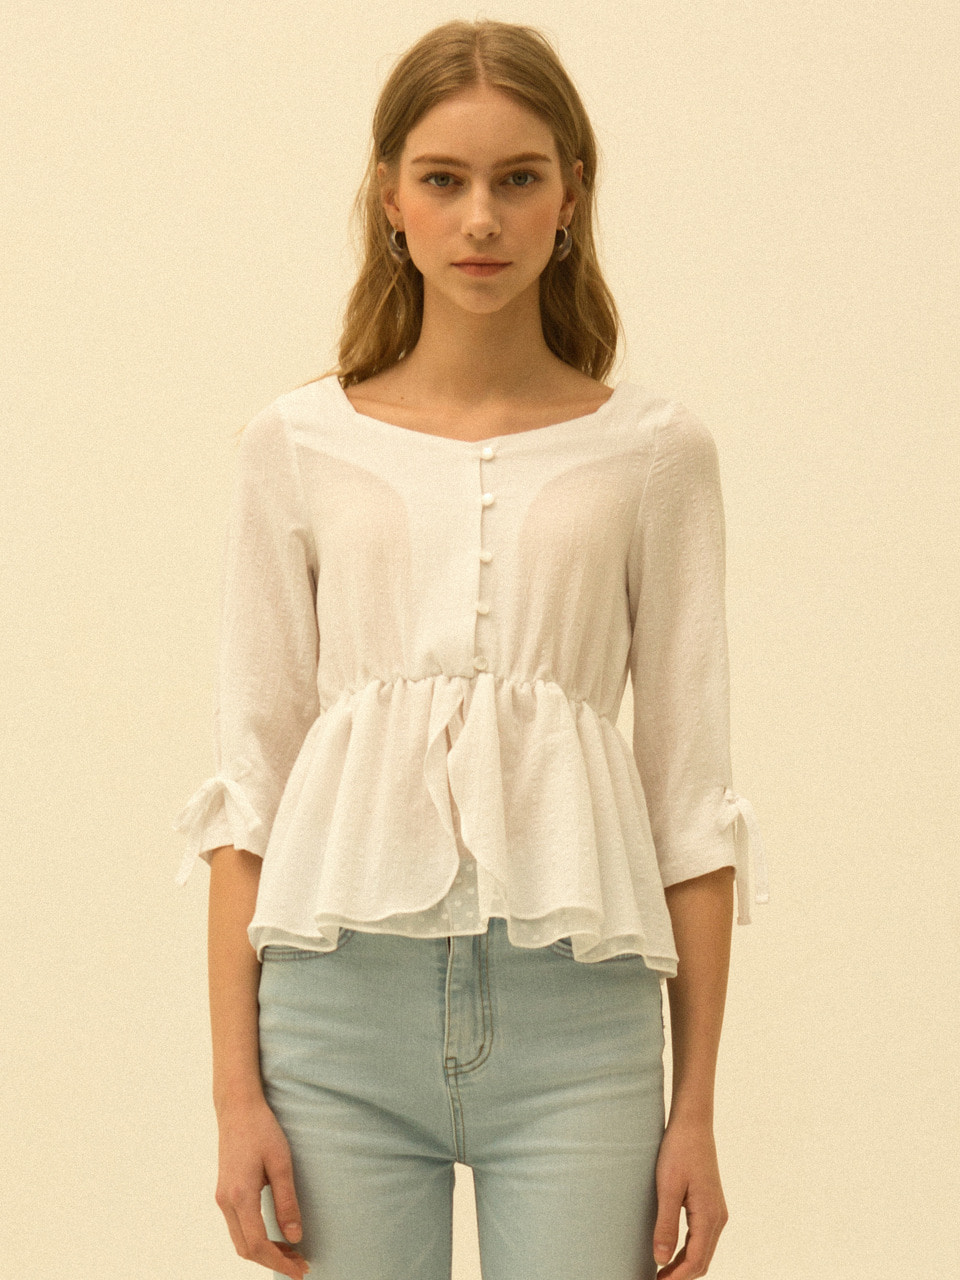 comos'183 square neck flare blouse (white)